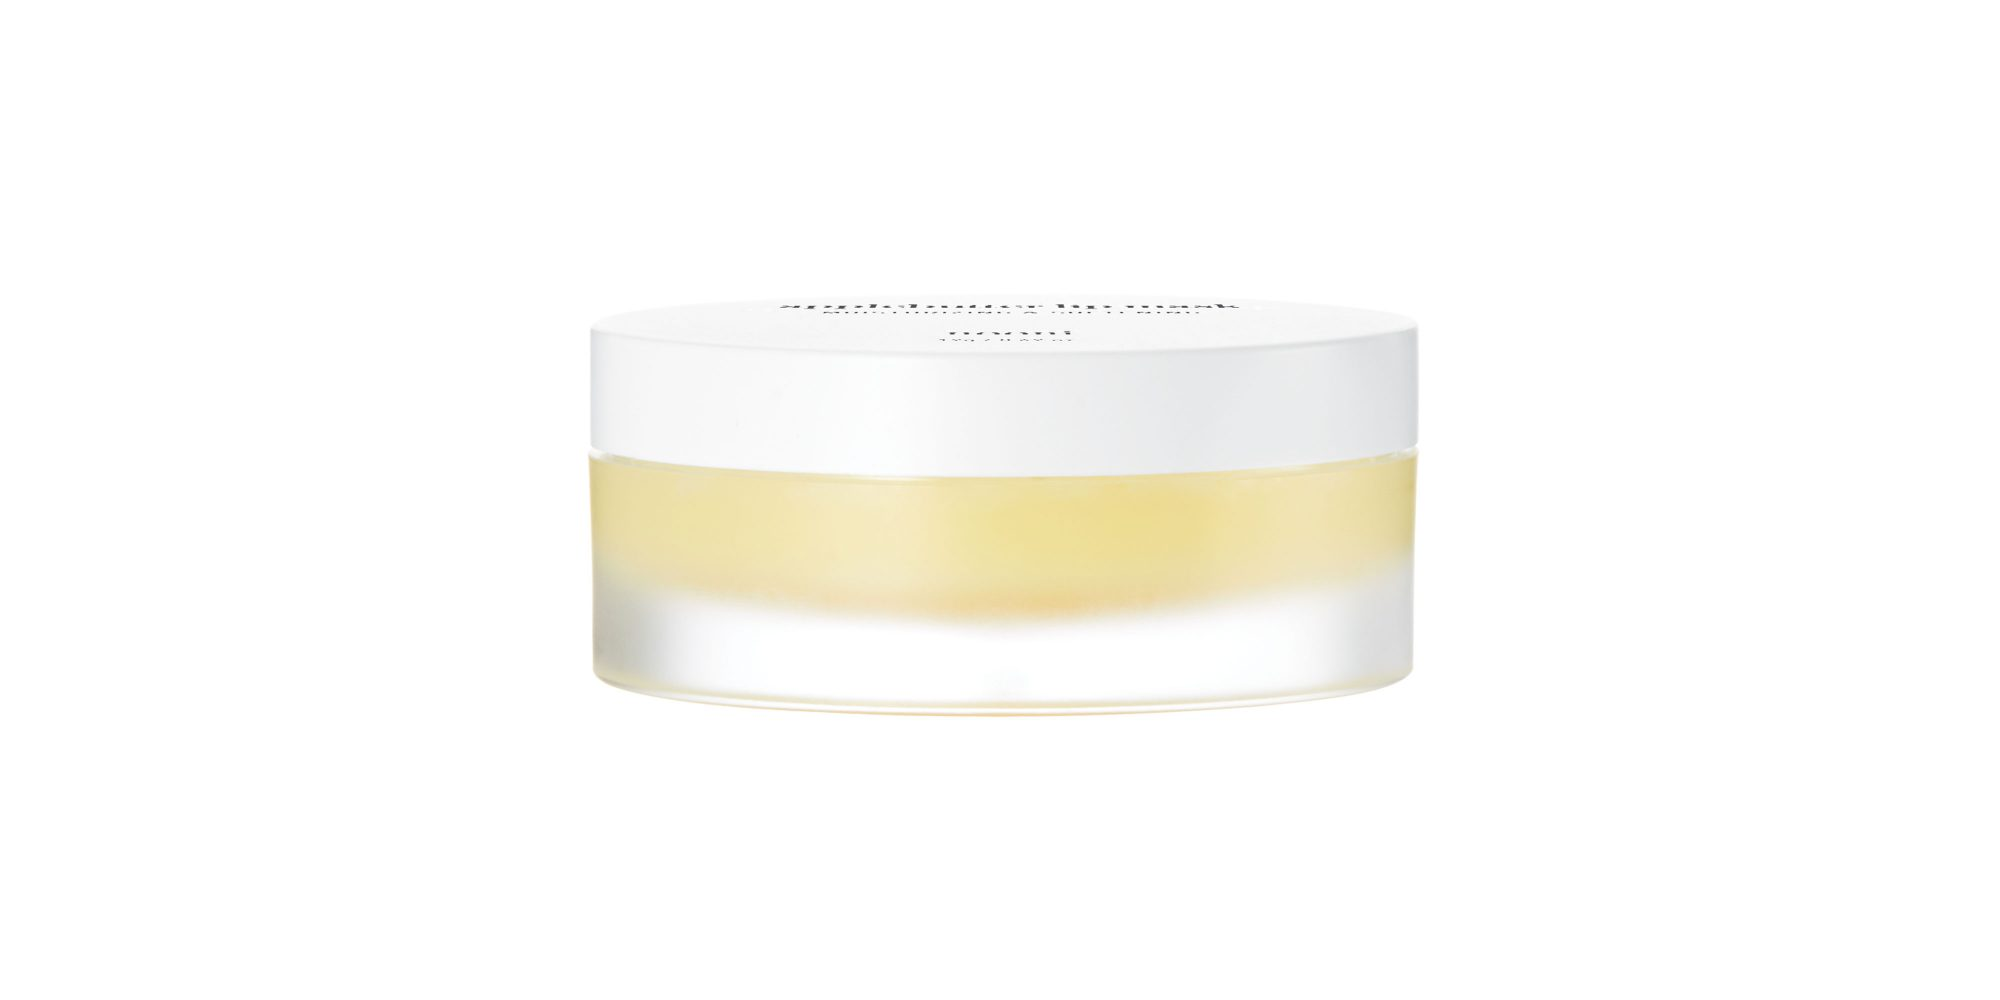 Nooni Applebutter Lip Mask Image